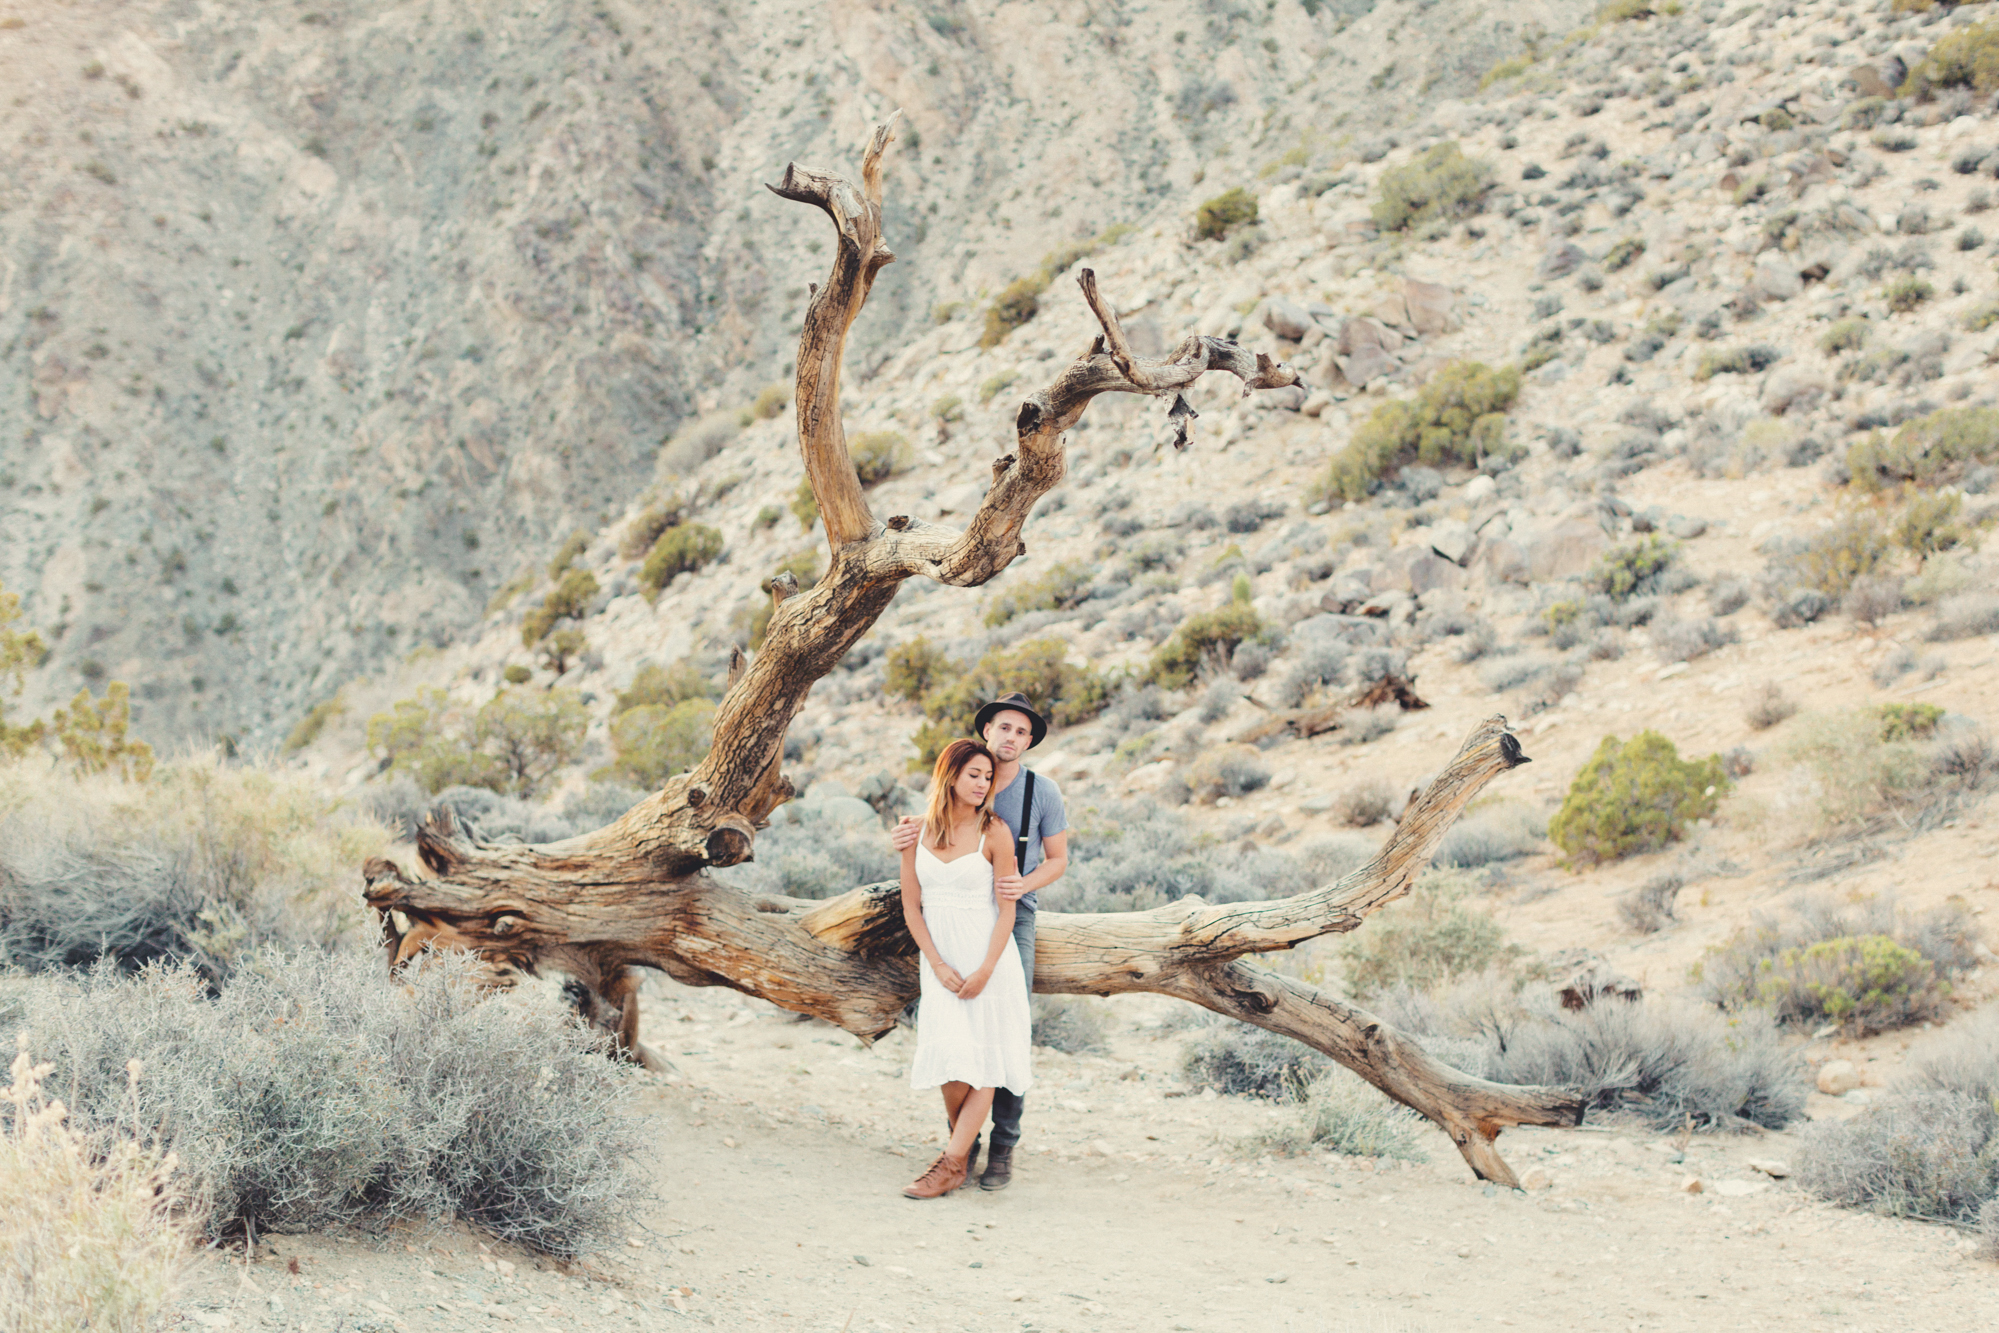 Joshua Tree Engagement Session @Anne-Claire Brun -1